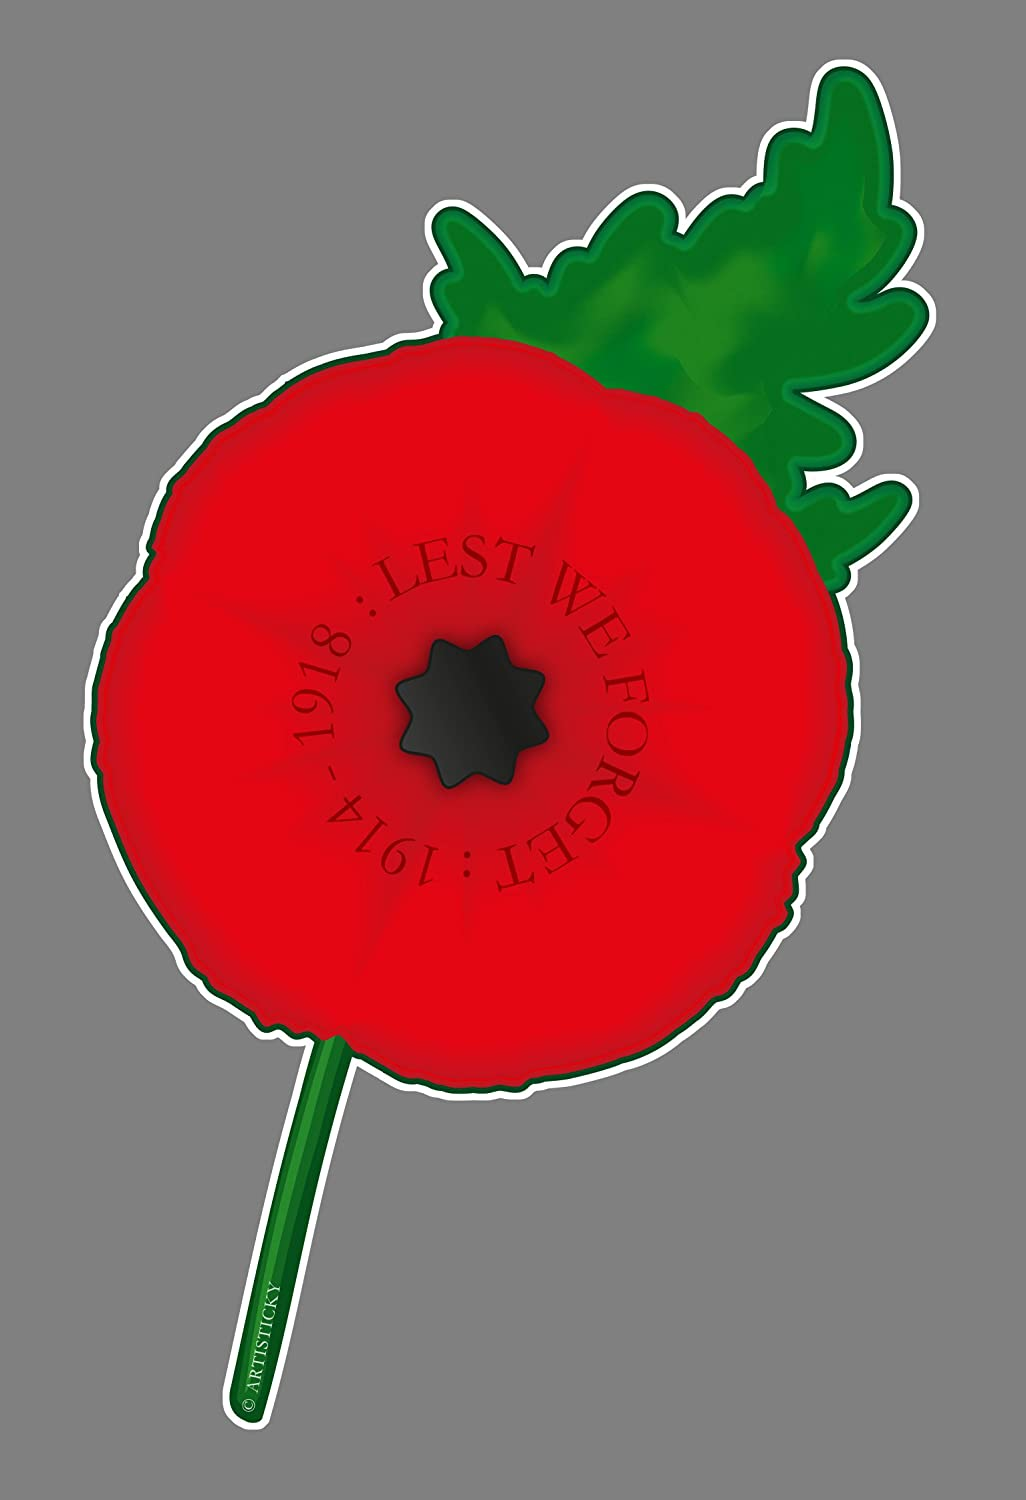 Artisticky Poppy Self-cling Window Sticker 85x135mm - FREE UK POSTAGE + DONATION TO RBL Artisticky Ltd